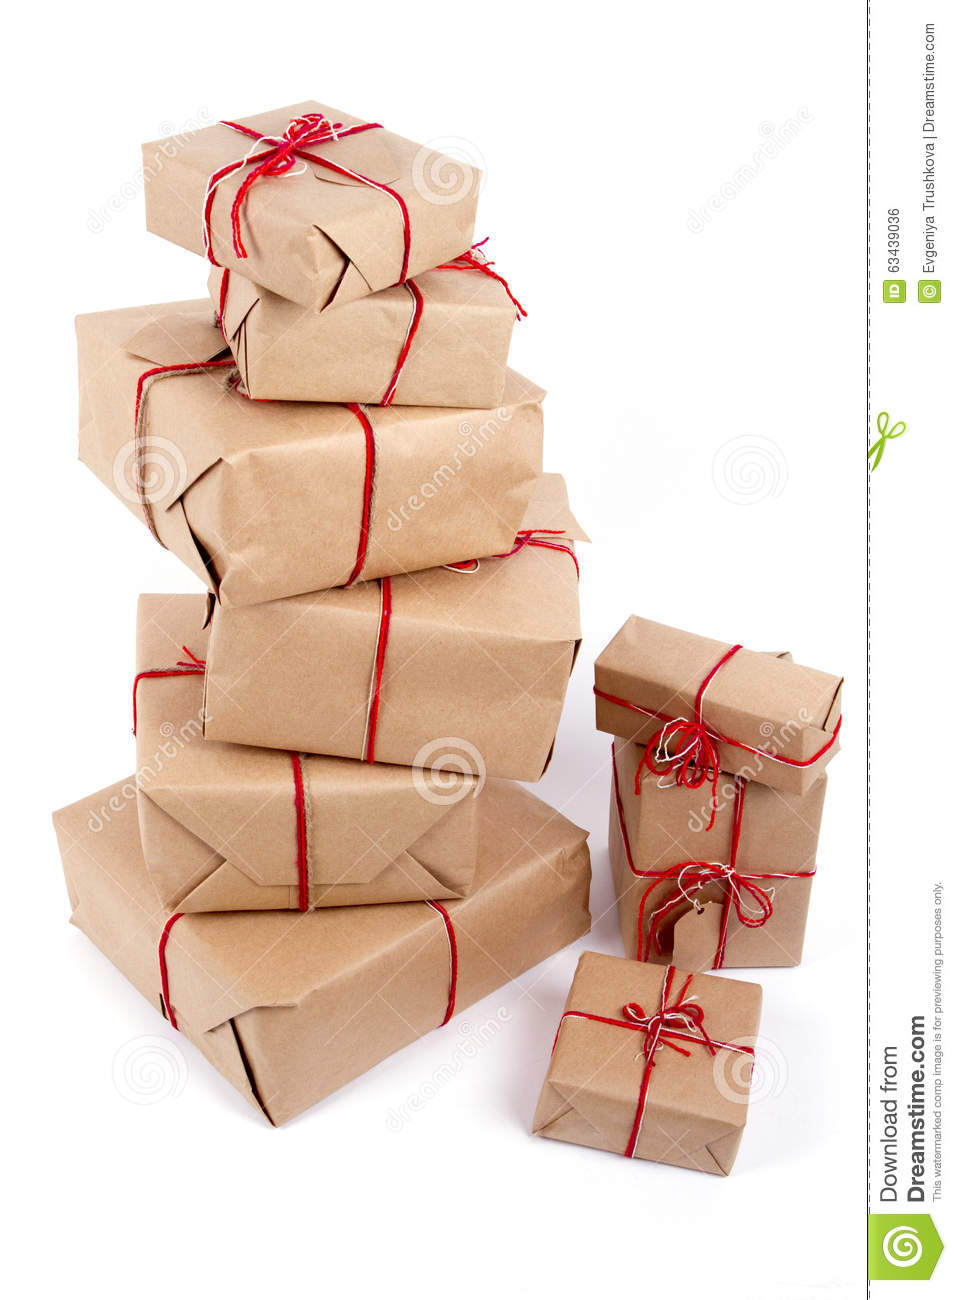 Stack Of Handcraft Gift Boxes On White Background Stock